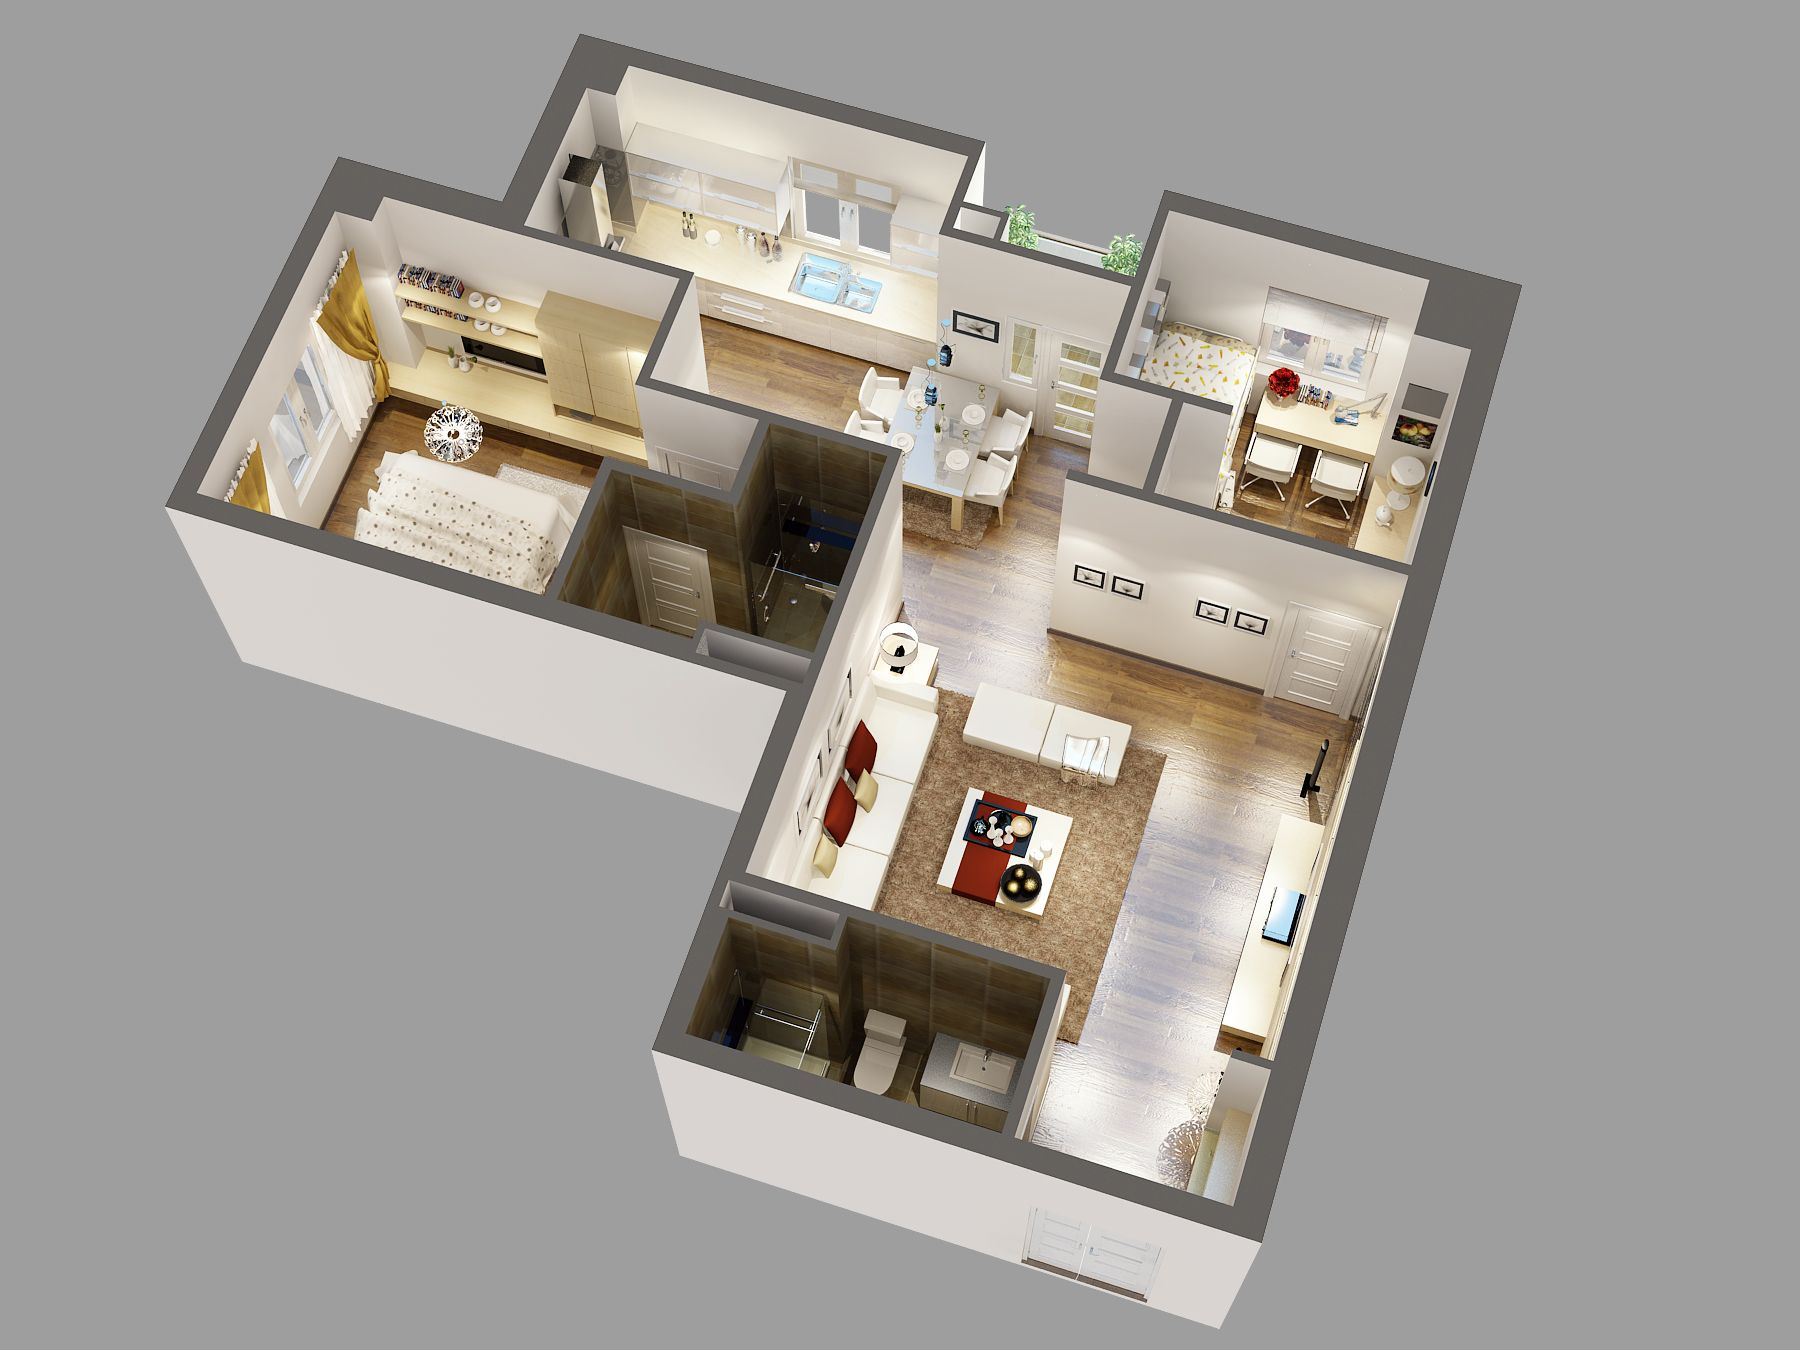 Detailed House Cutaway 3d Model With Images Small Room Design